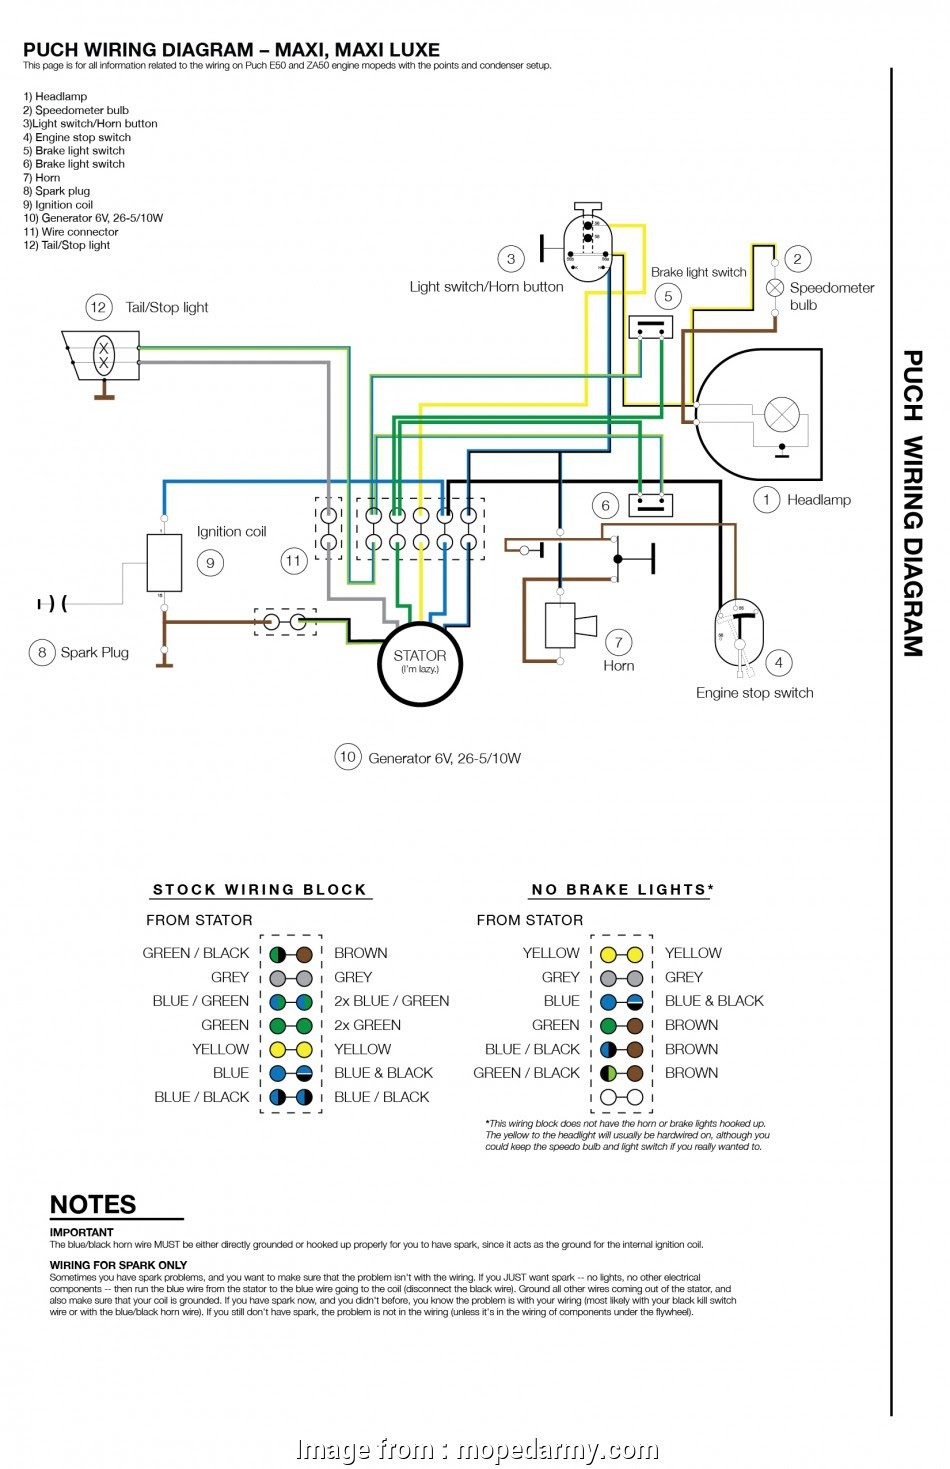 DIAGRAM] 8 Coil 5 Wire Stator Wiring Diagram FULL Version HD Quality Wiring  Diagram - NEESCOSCHEMATIC4206.FISIOBENESSERESEGRATE.ITfisiobenesseresegrate.it